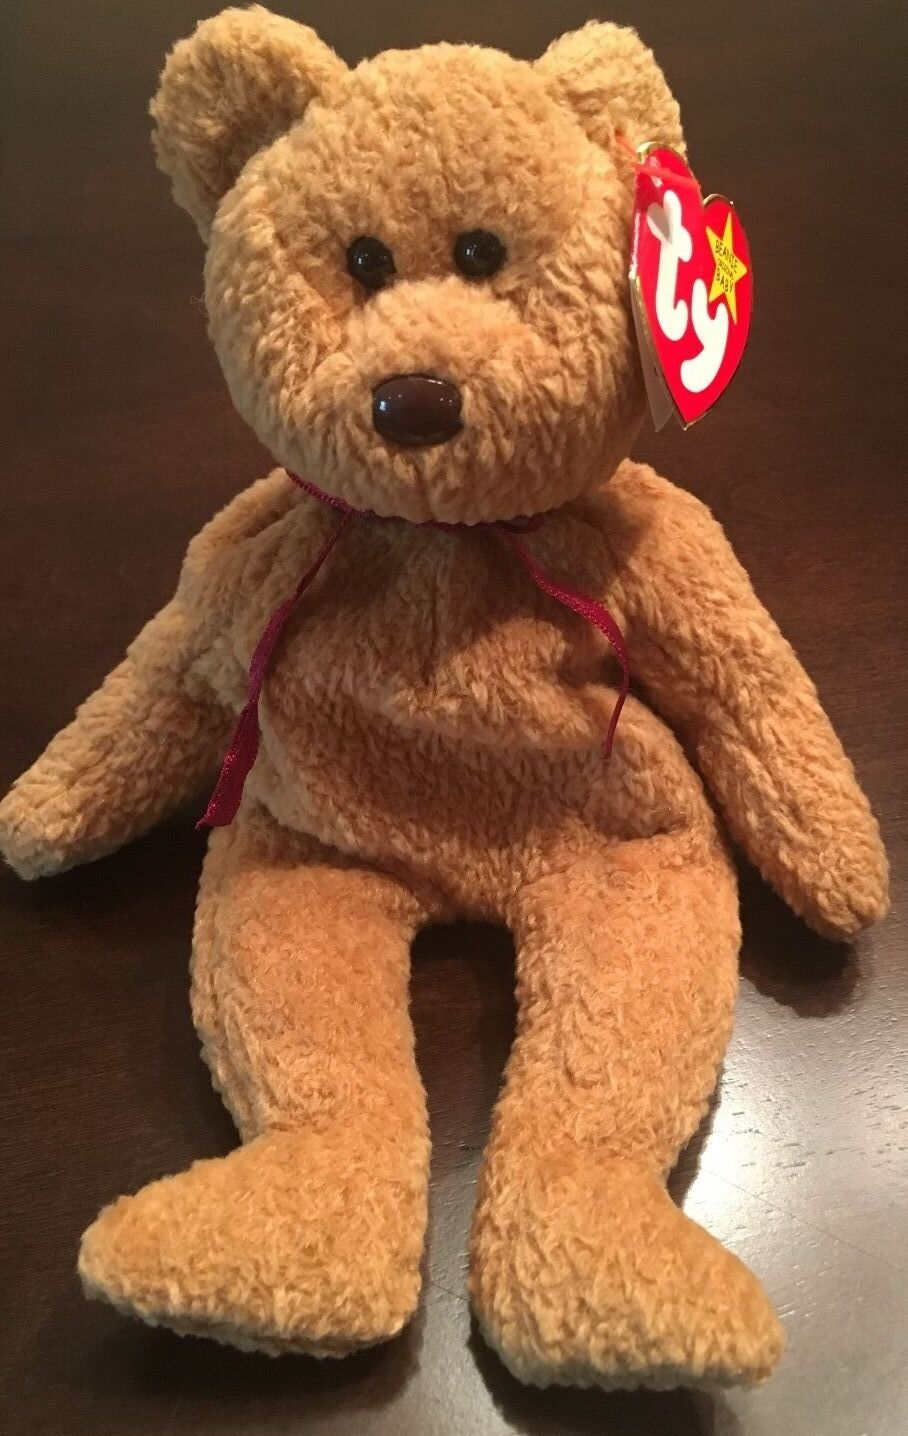 00a4910a50f RARE TY CURLY BEAR BEANIE BABY - RETIRED WITH TAG ERRORS aebe46 ...